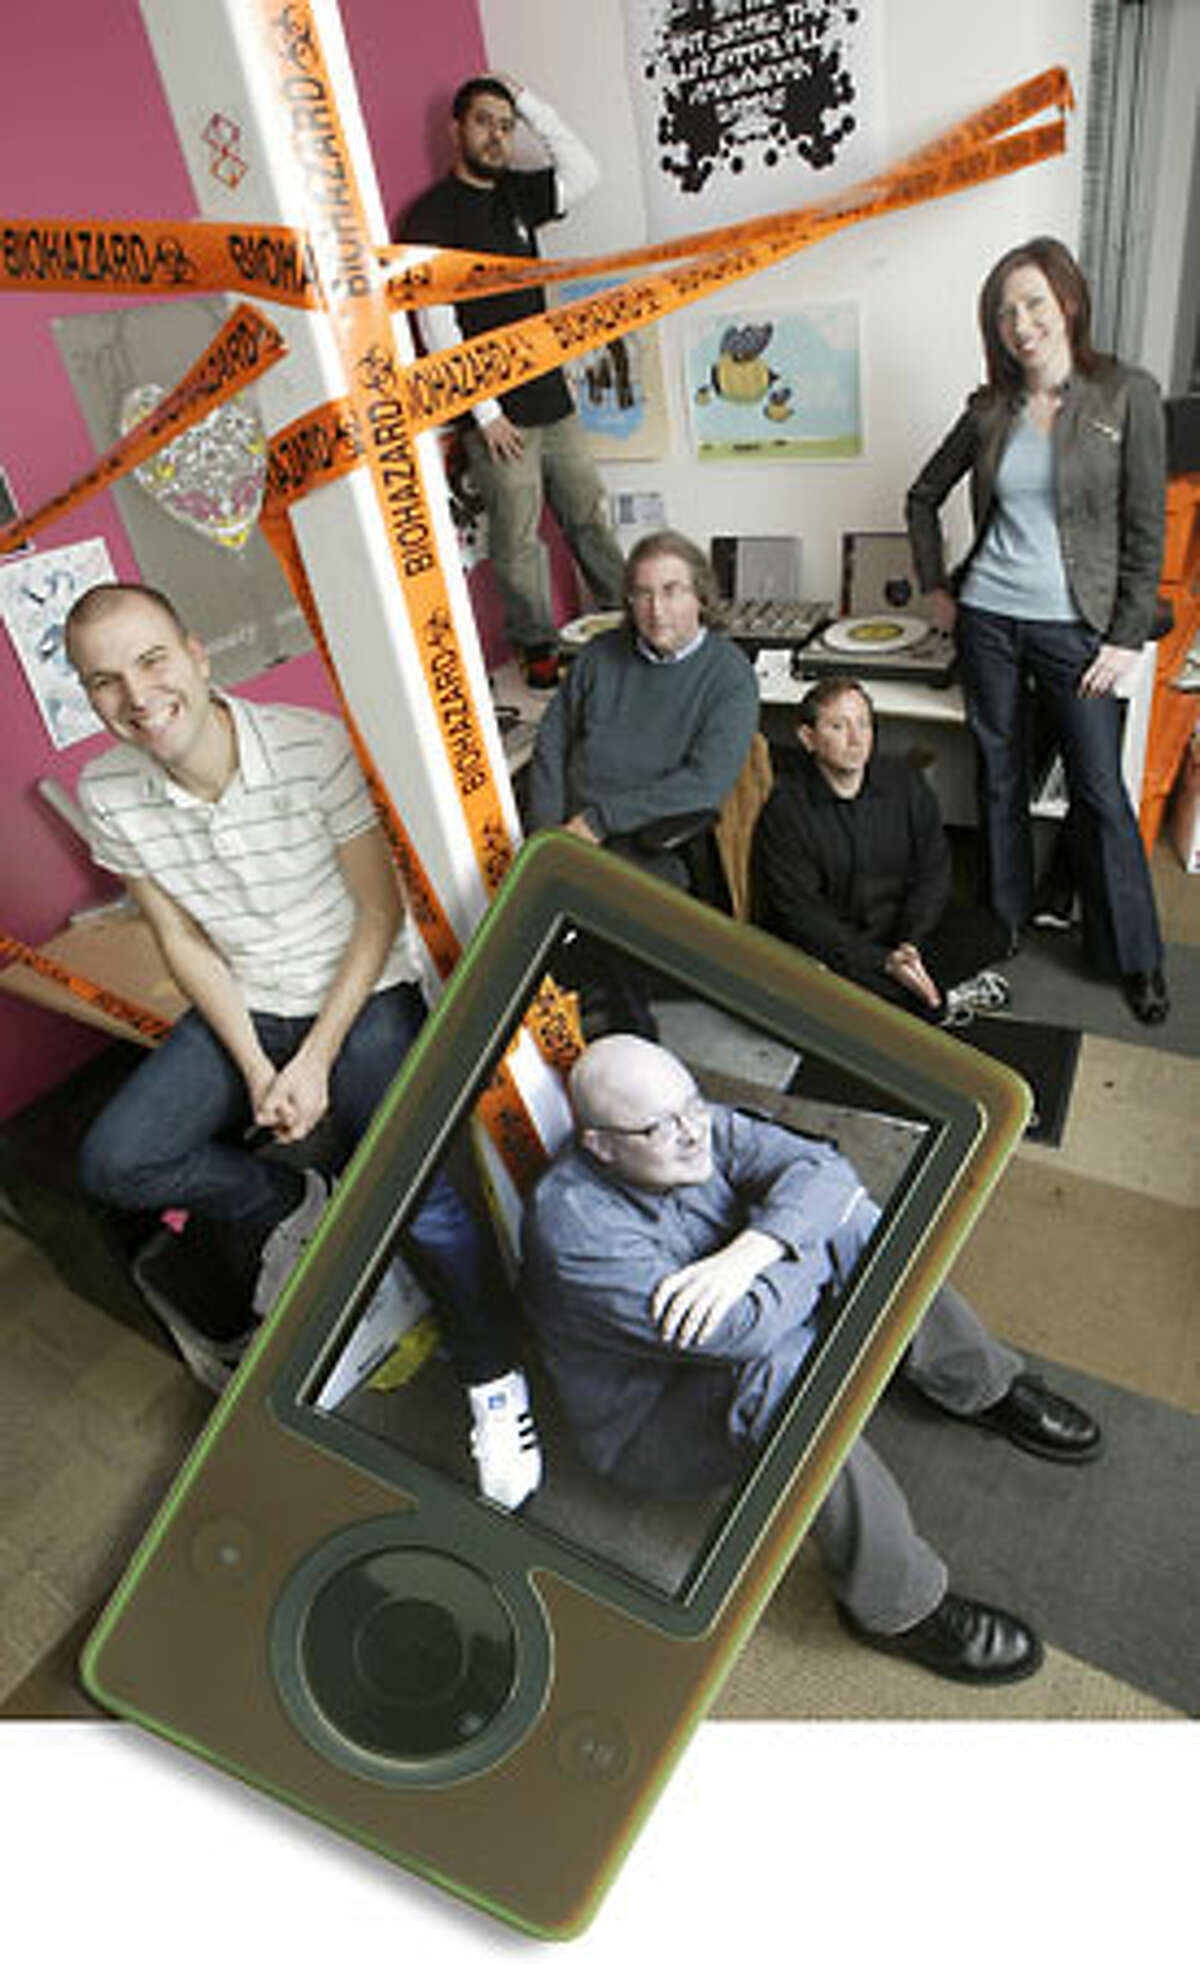 Zune Marketplace editorial team: Paul Pearson, in Zune. Behind him, from left, Kyle Hopkins, Omid Fatemi, Jon Kertzer, Andy Kessler and Emily Griffin.